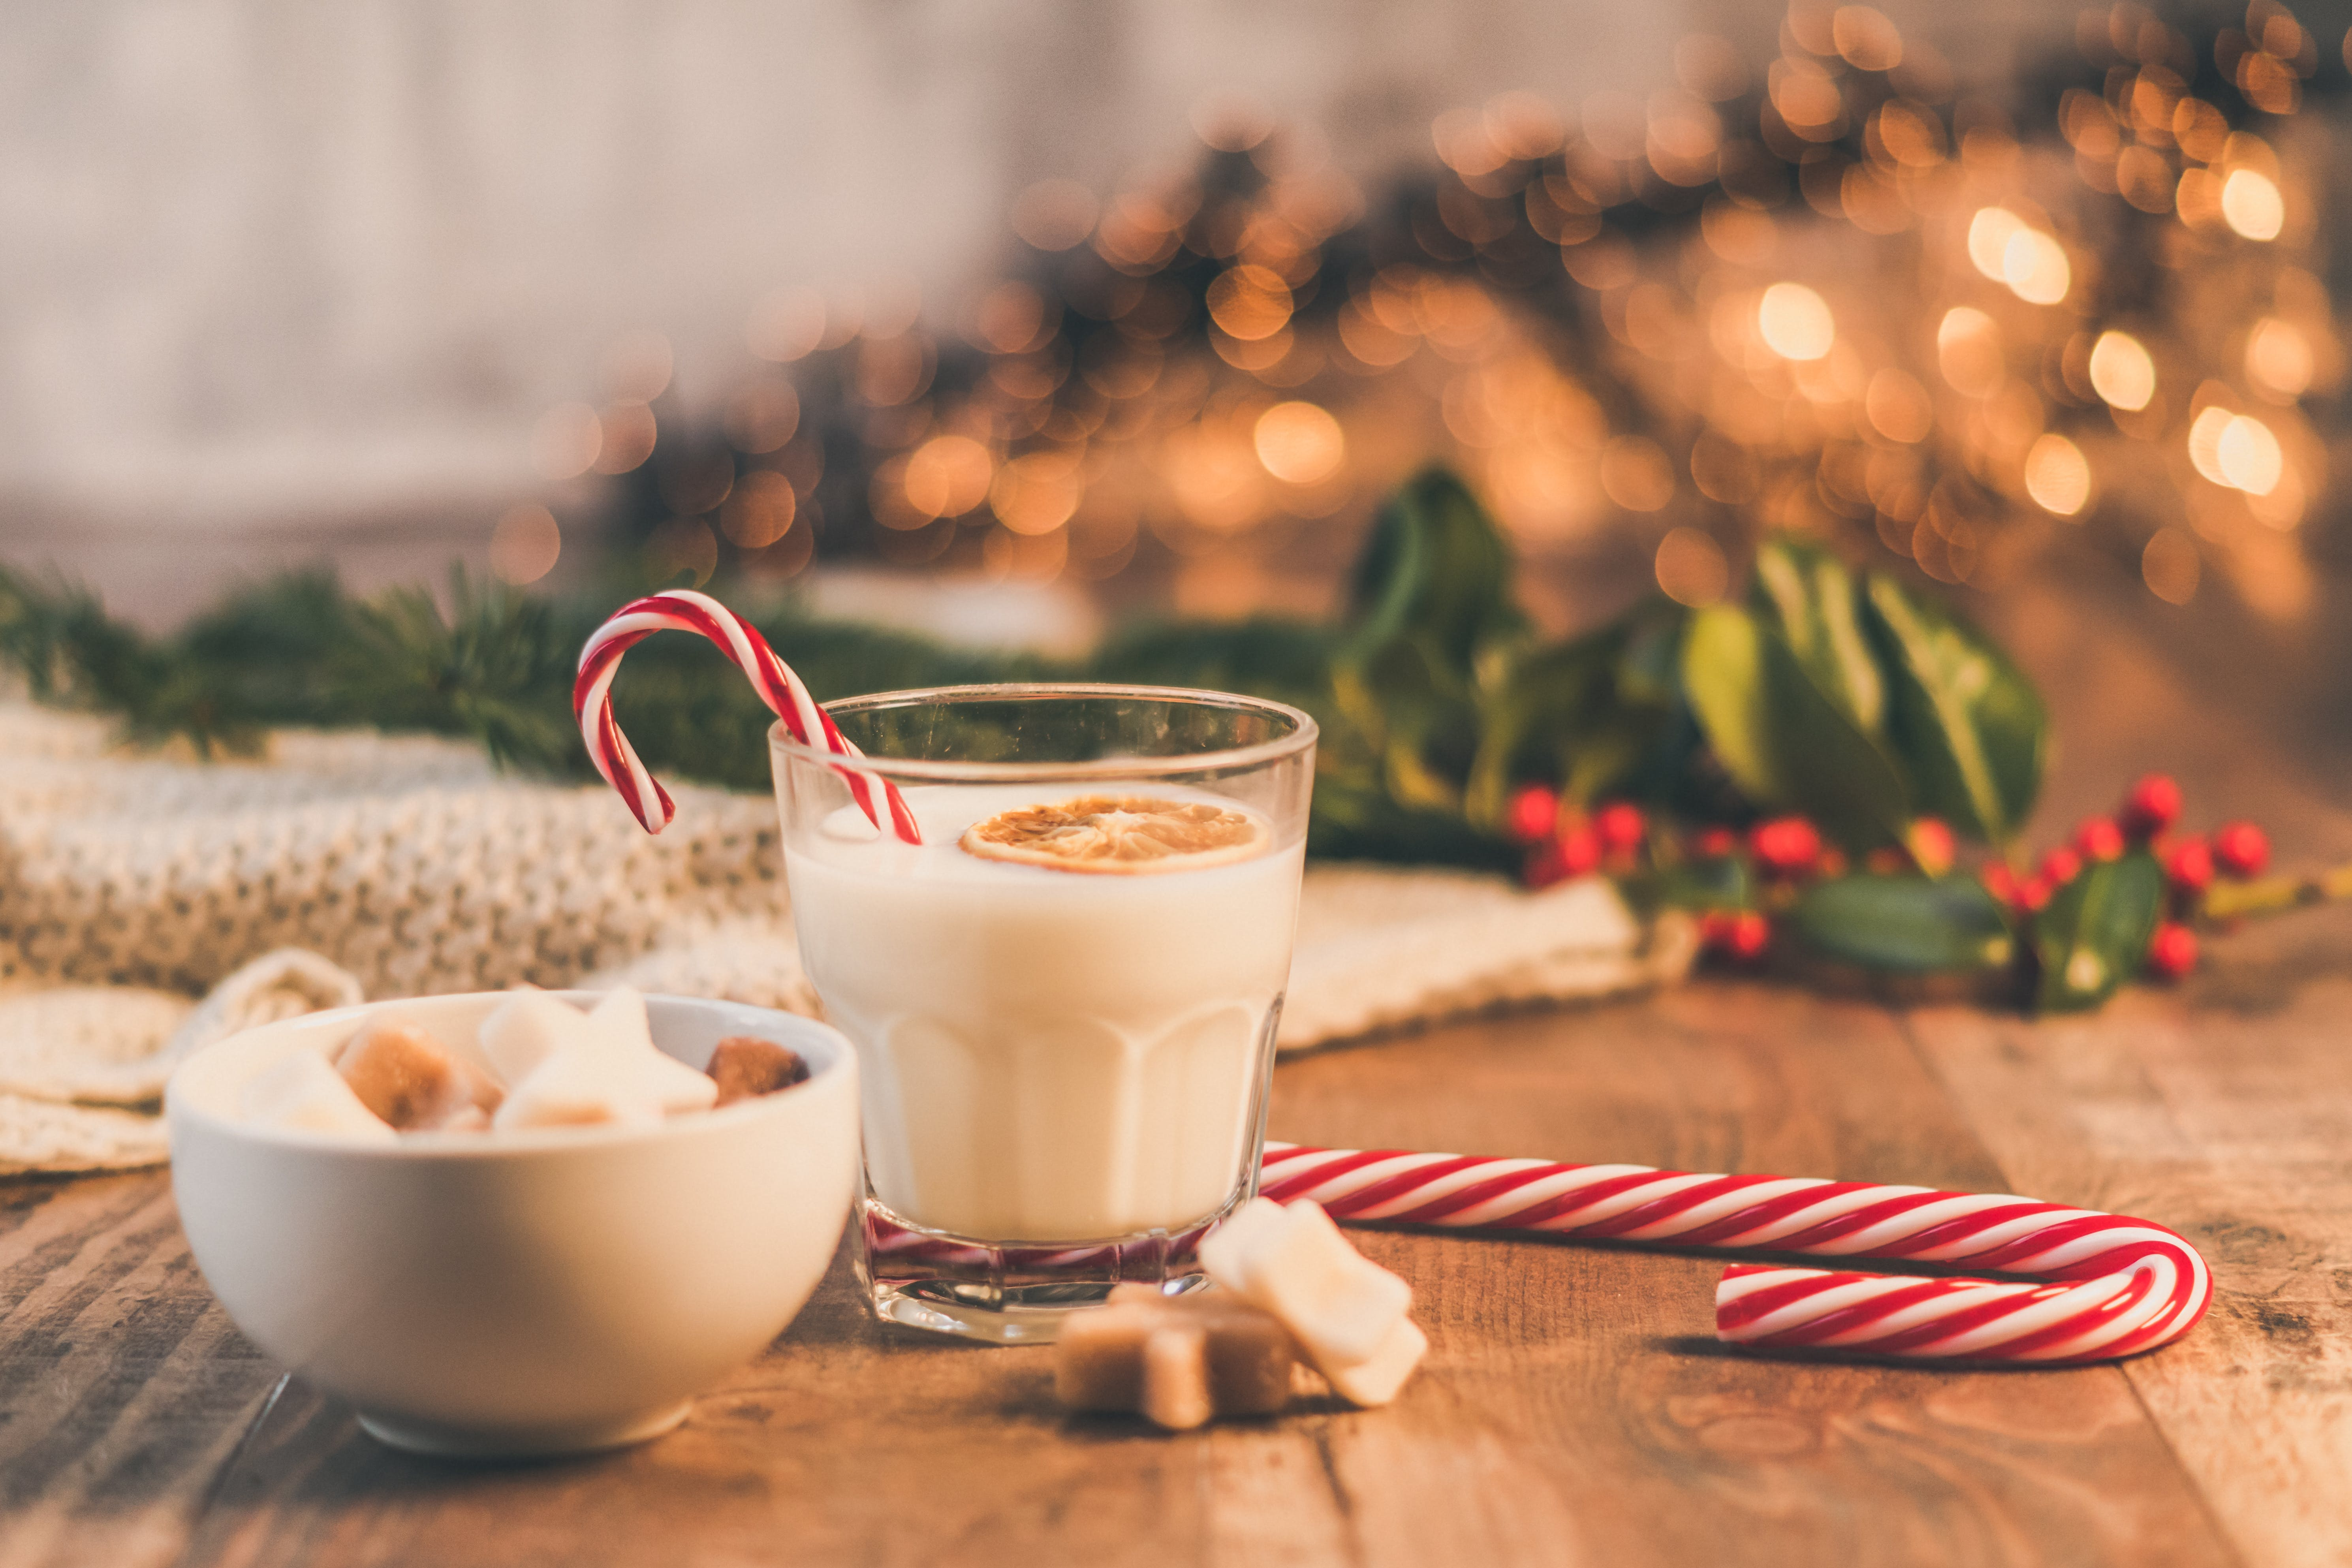 Clear Drinking Glass With Milk Near Candy Cane